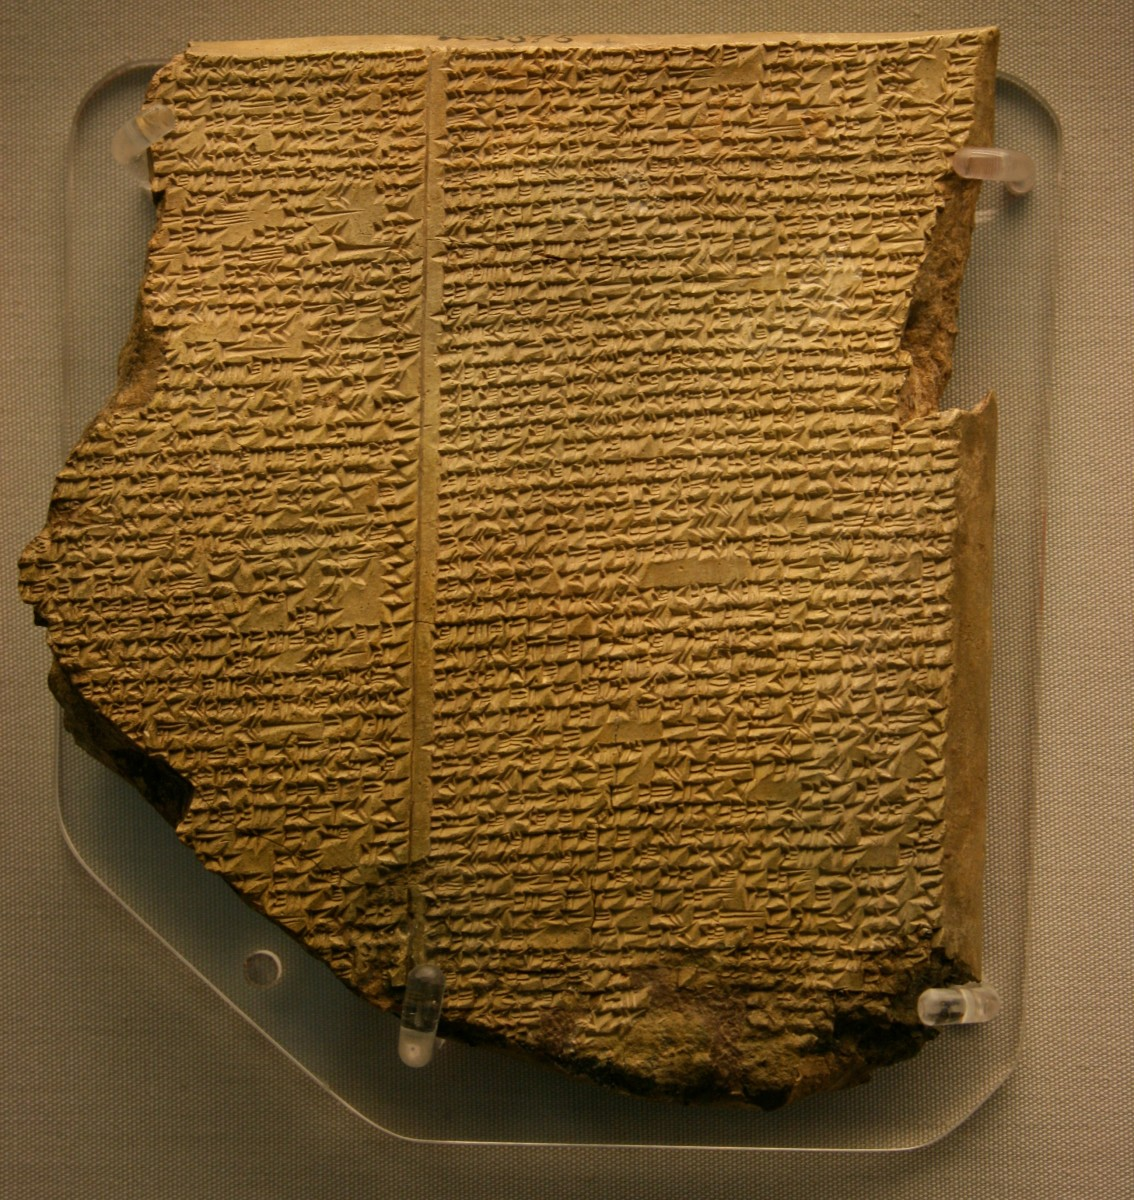 Flood Tablet from the Epic of Gilgamesh